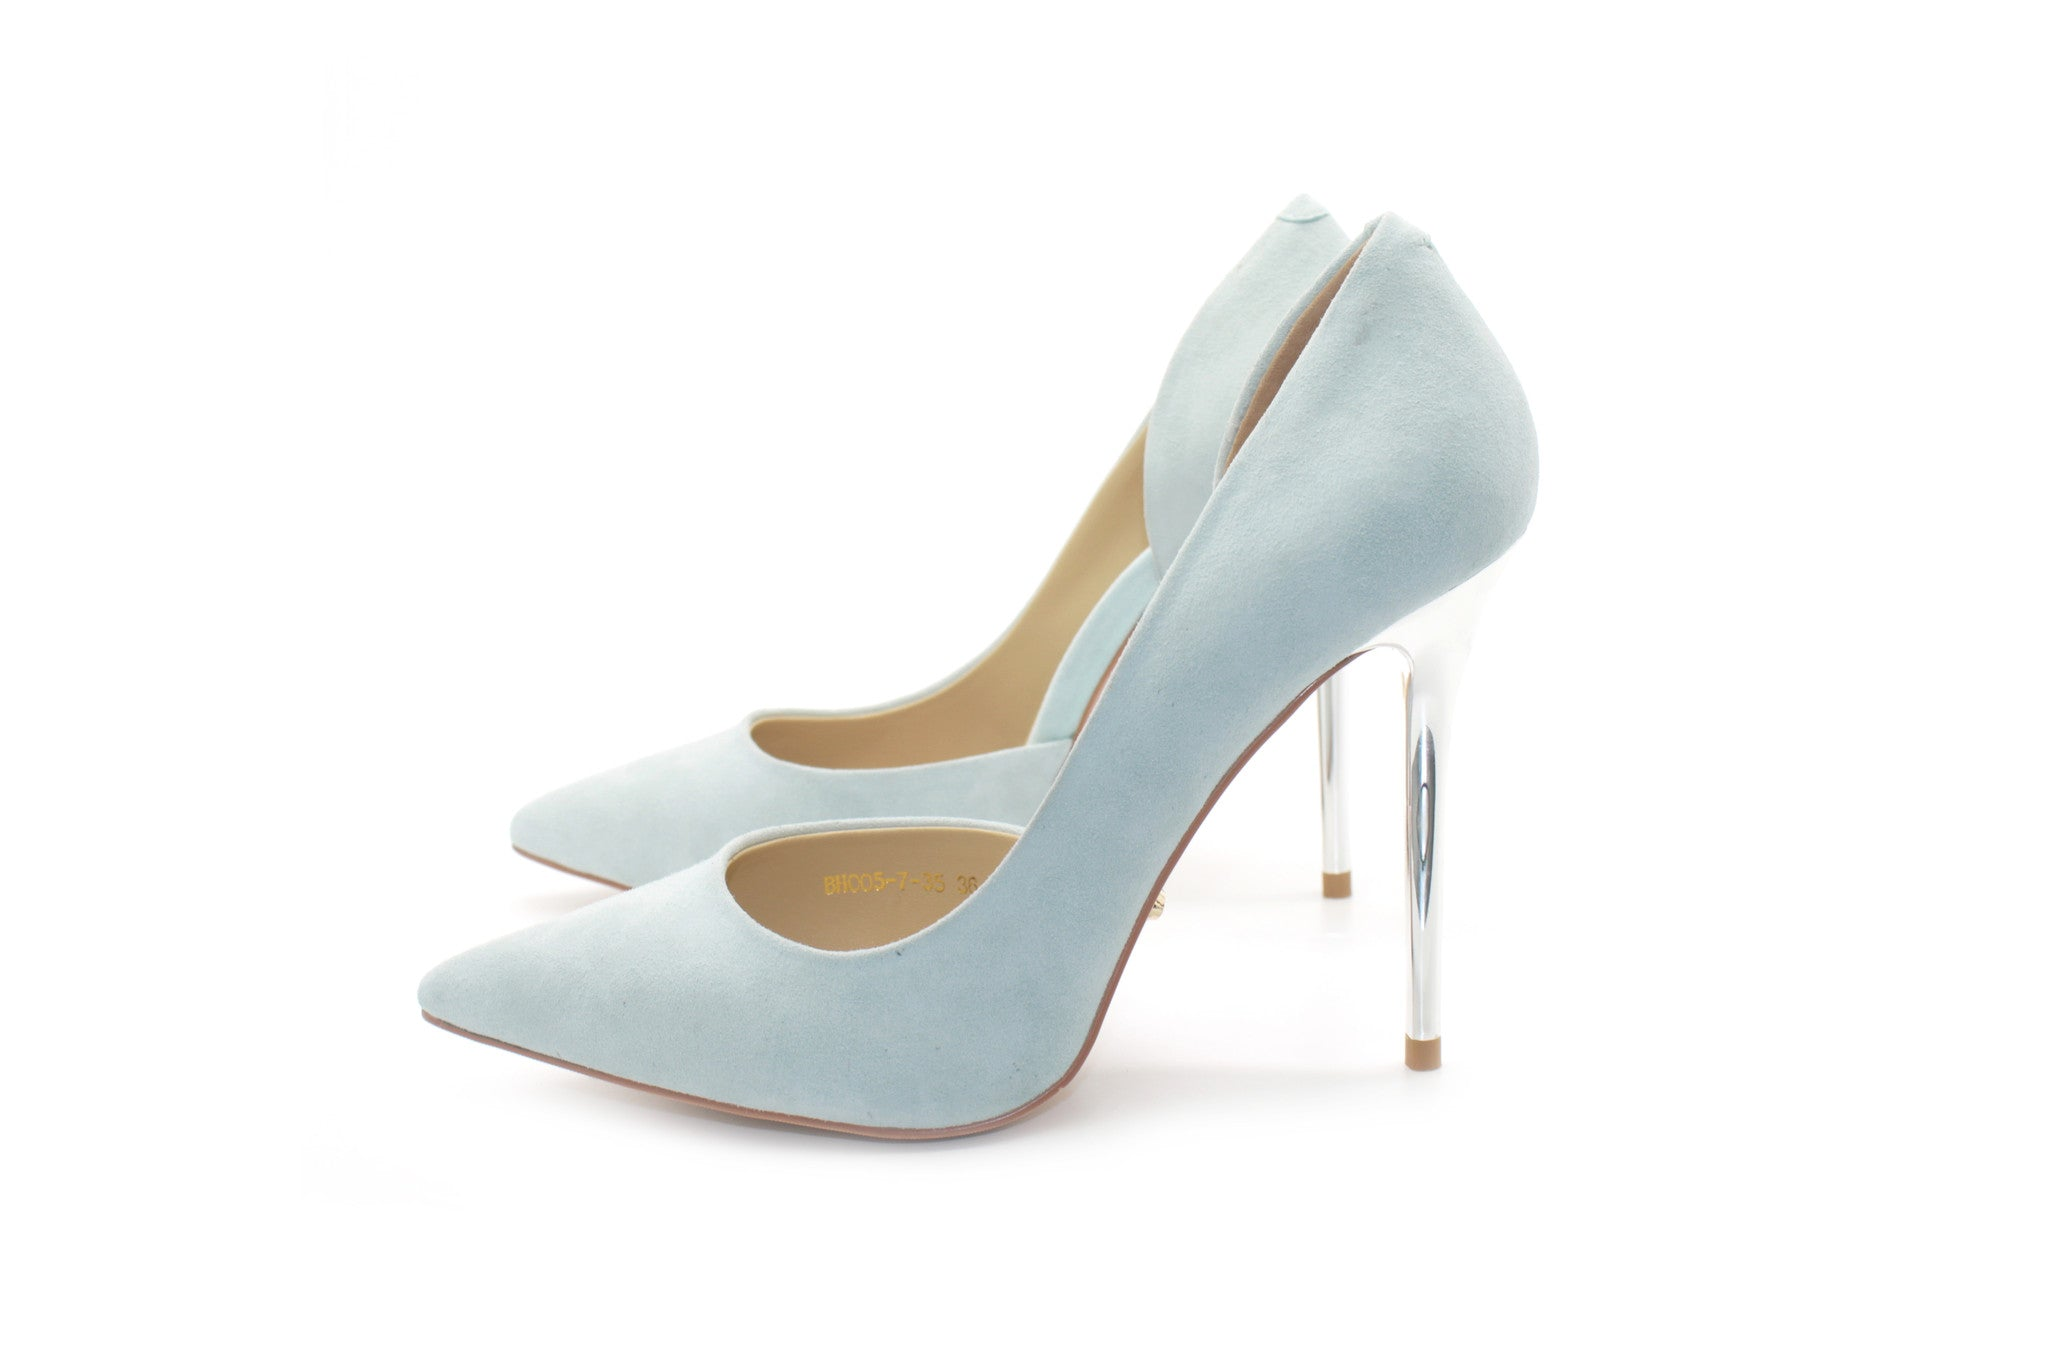 Silver Shoes 4 Inch Heels